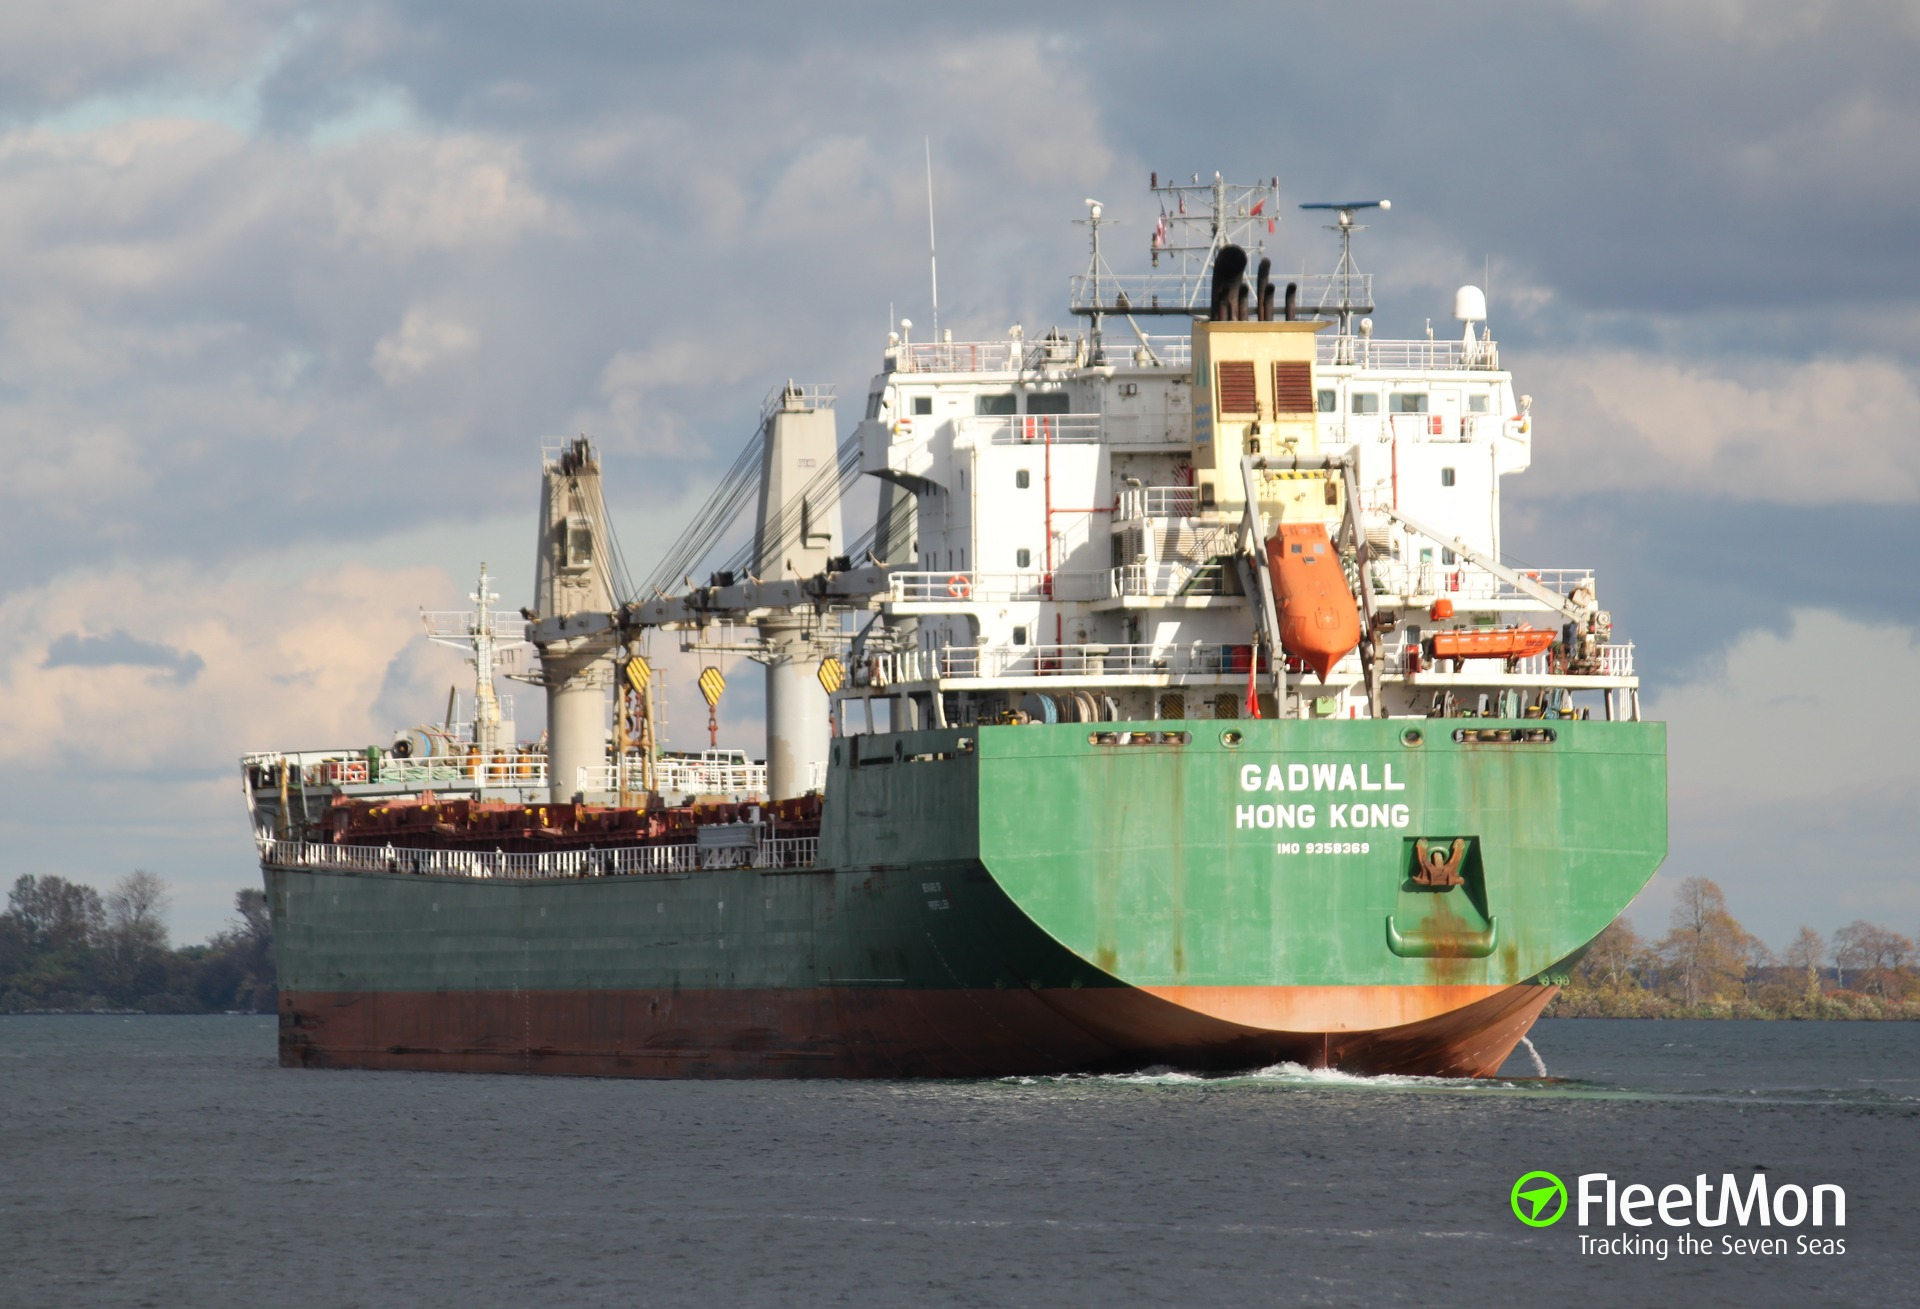 Canal Beauharnois traffic blocked after bulk carrier damage, Great Lakes